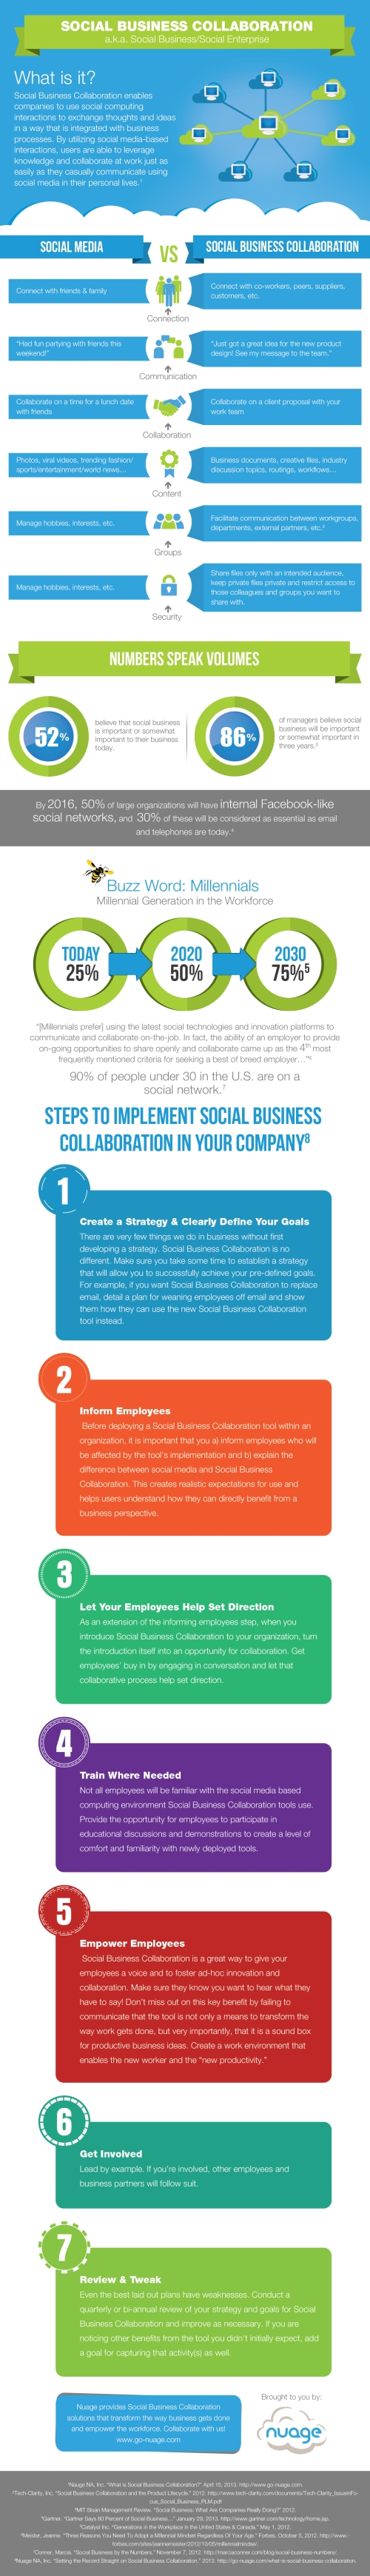 setting-the-record-straight-on-social-business-collaboration_519fcba58c5b3